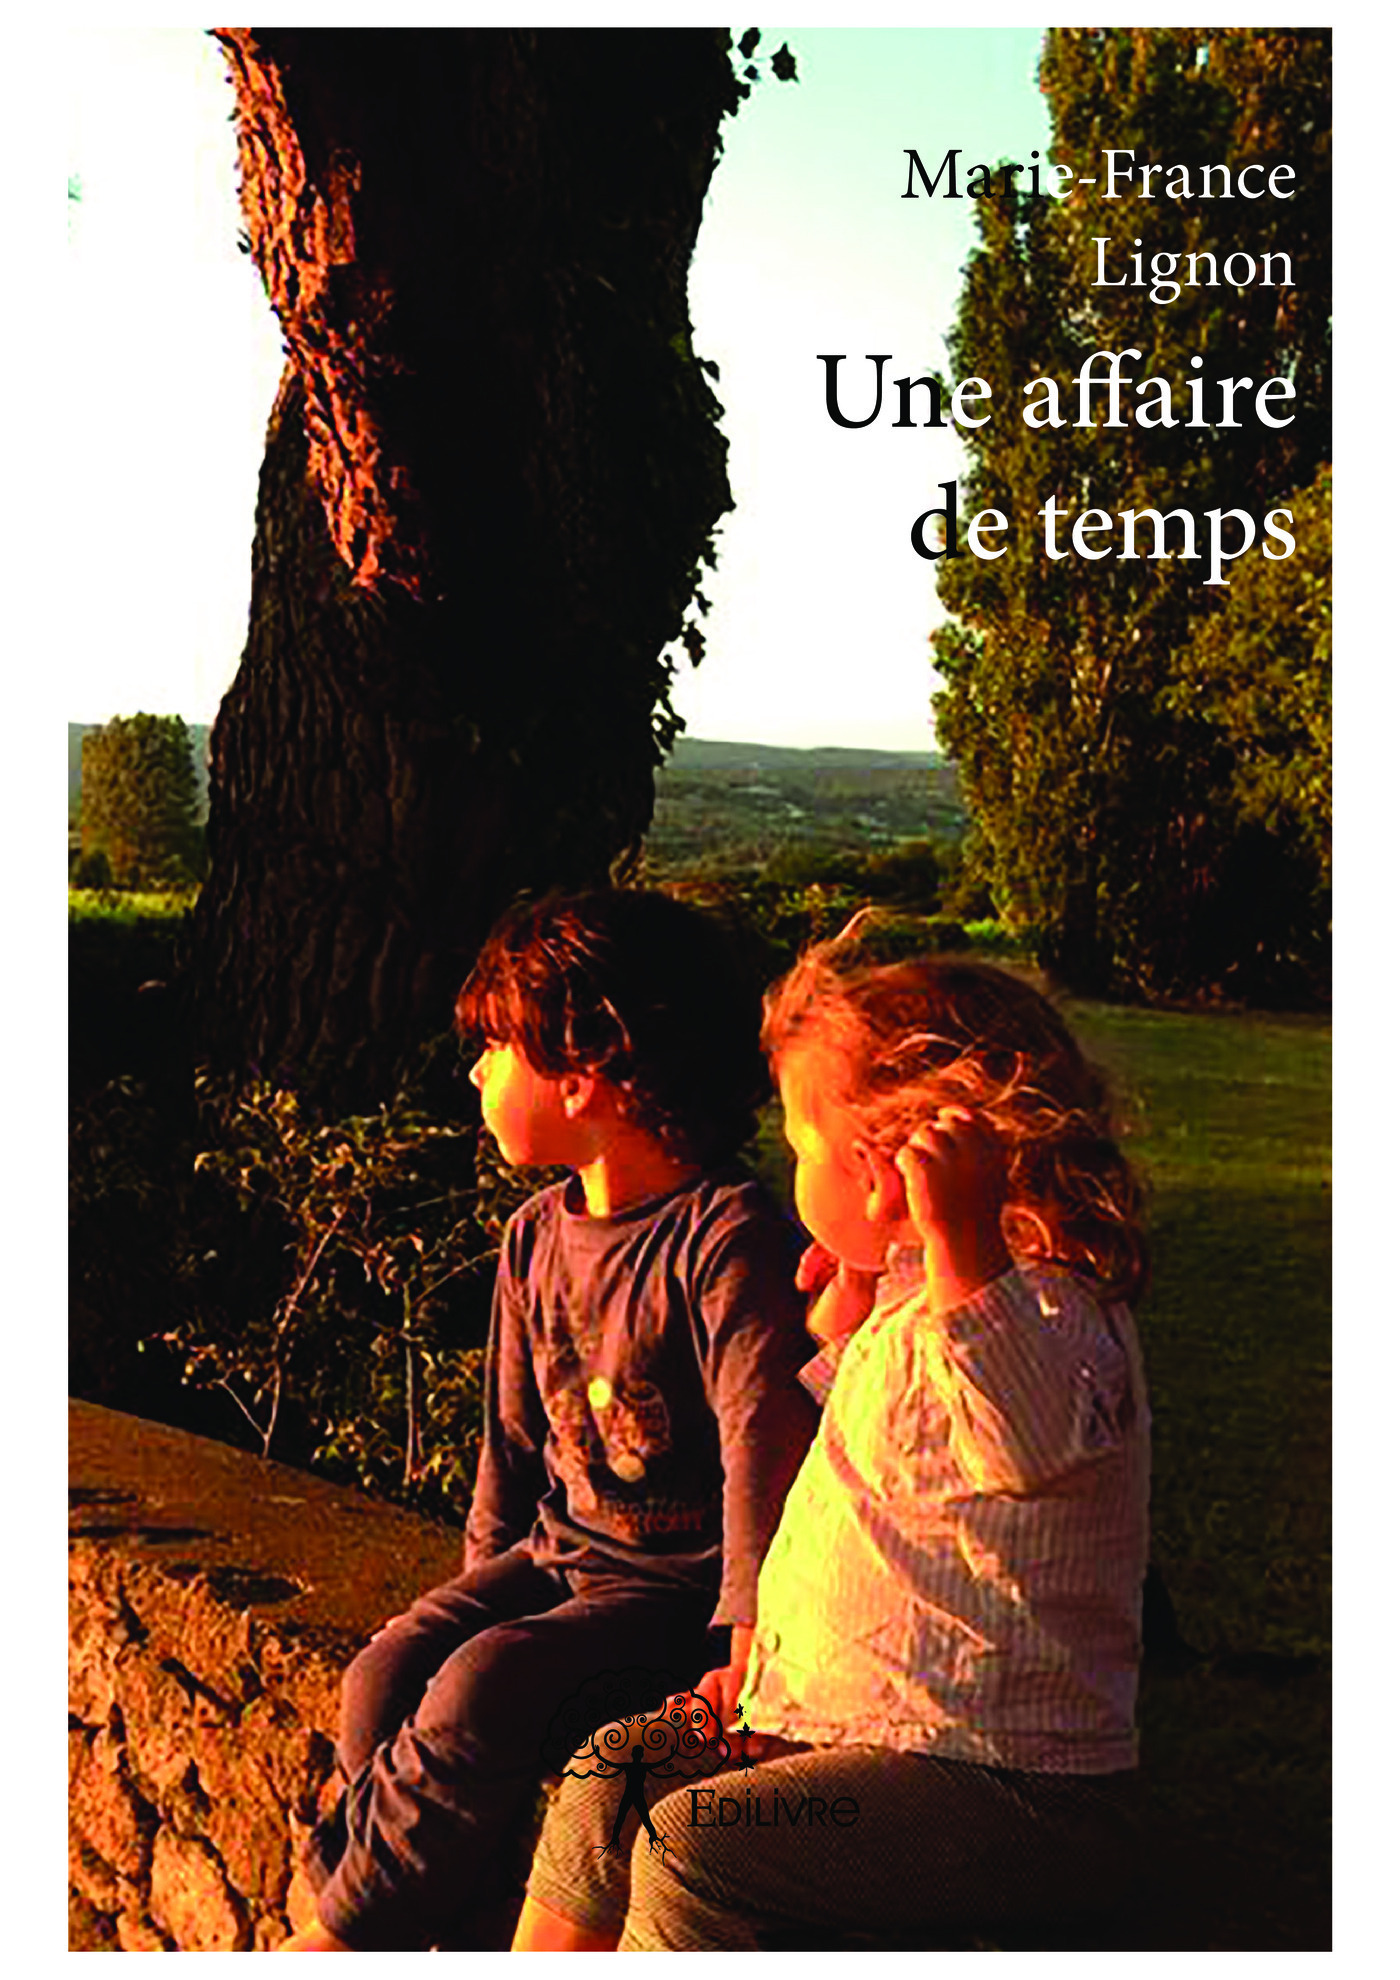 Une affaire de temps  - Marie-France Lignon